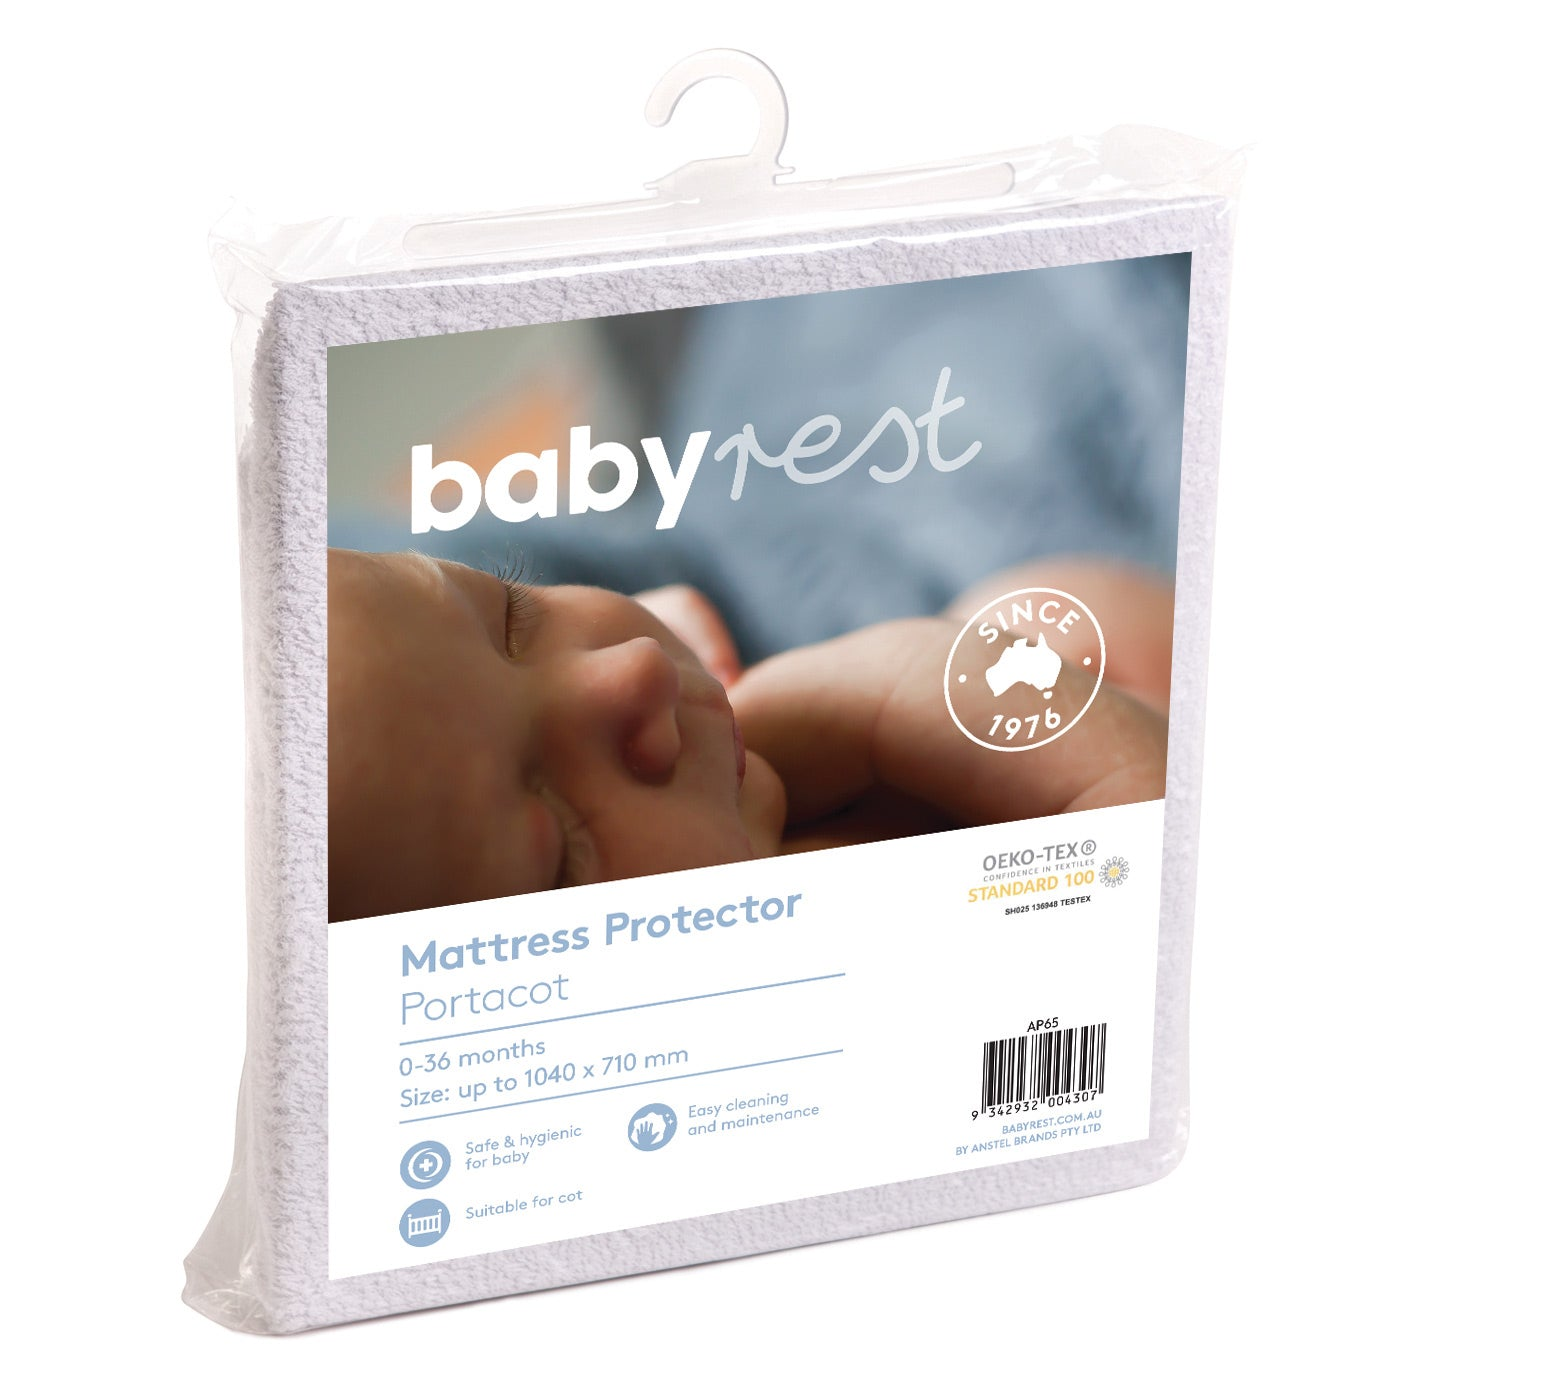 Babyrest Mattress Protector Portacot 1040 x 710